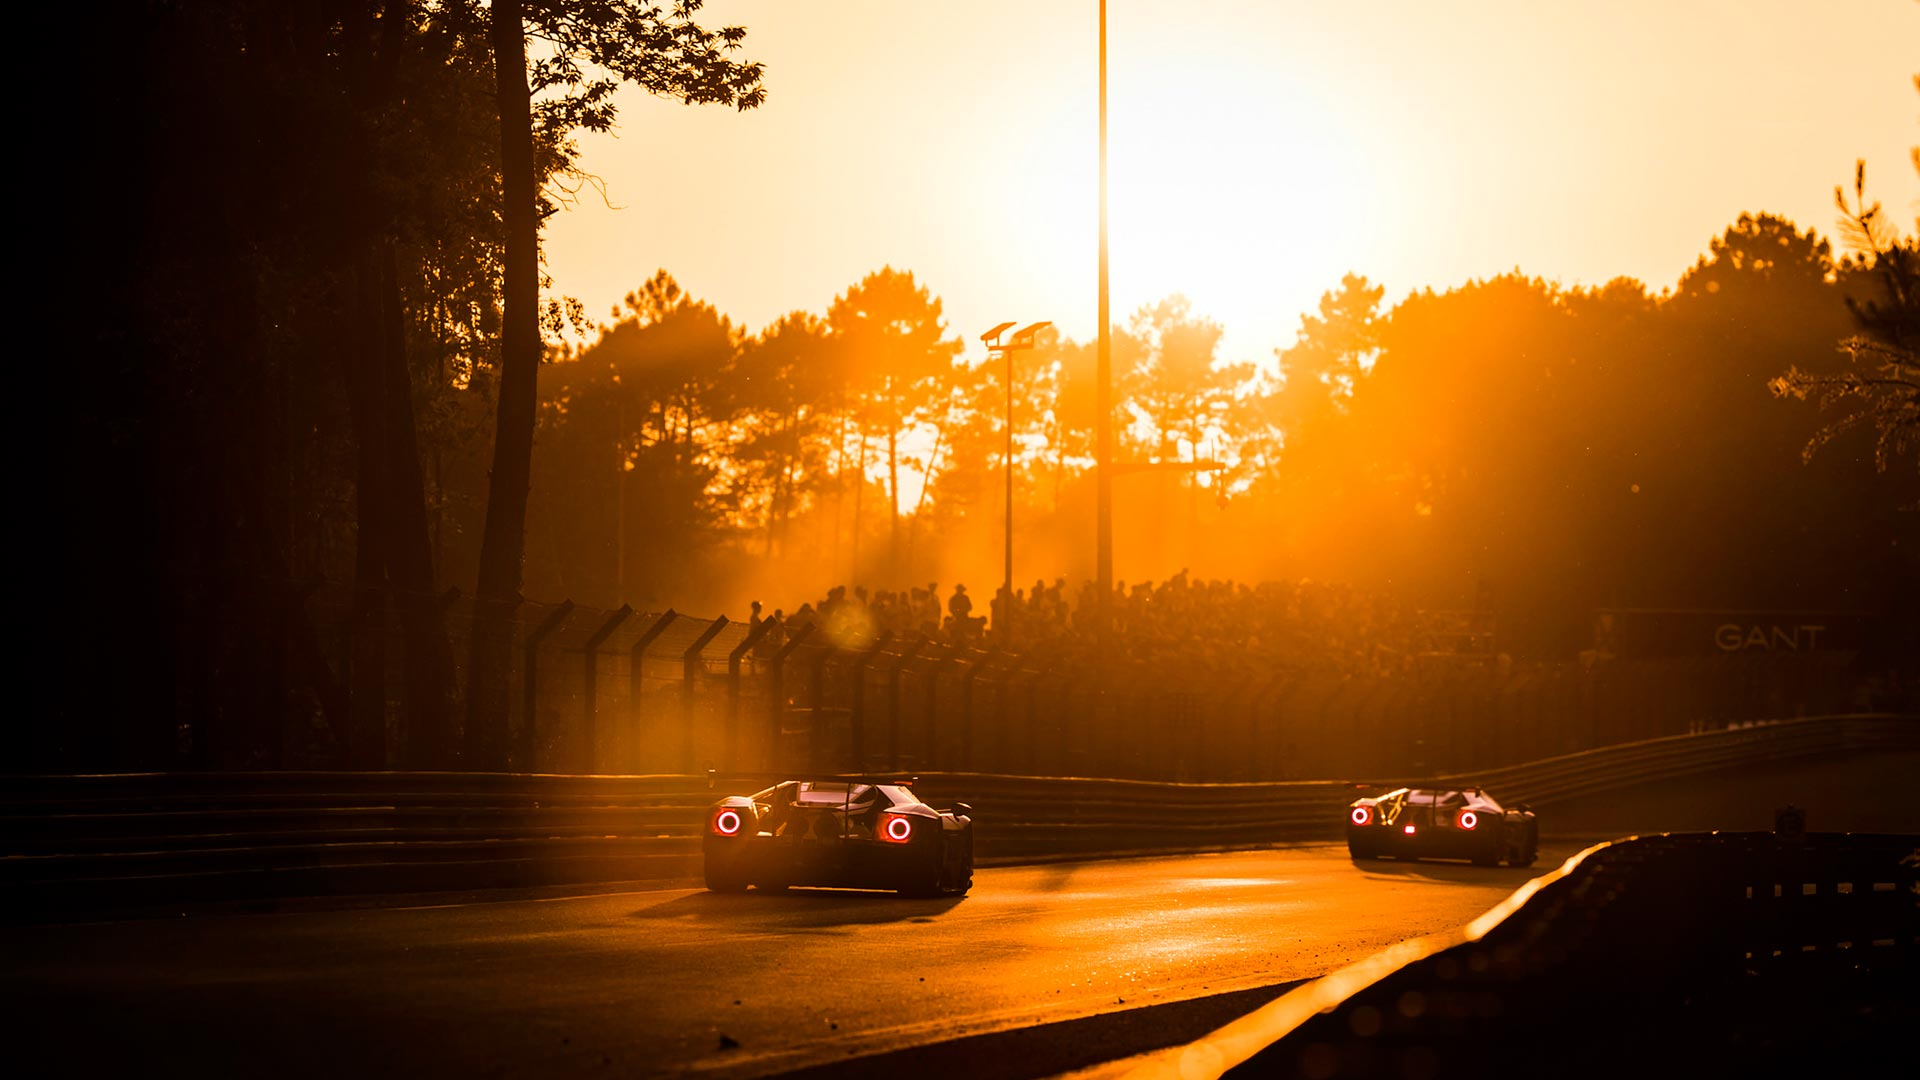 Sunset on the Ford GT Le Mans project